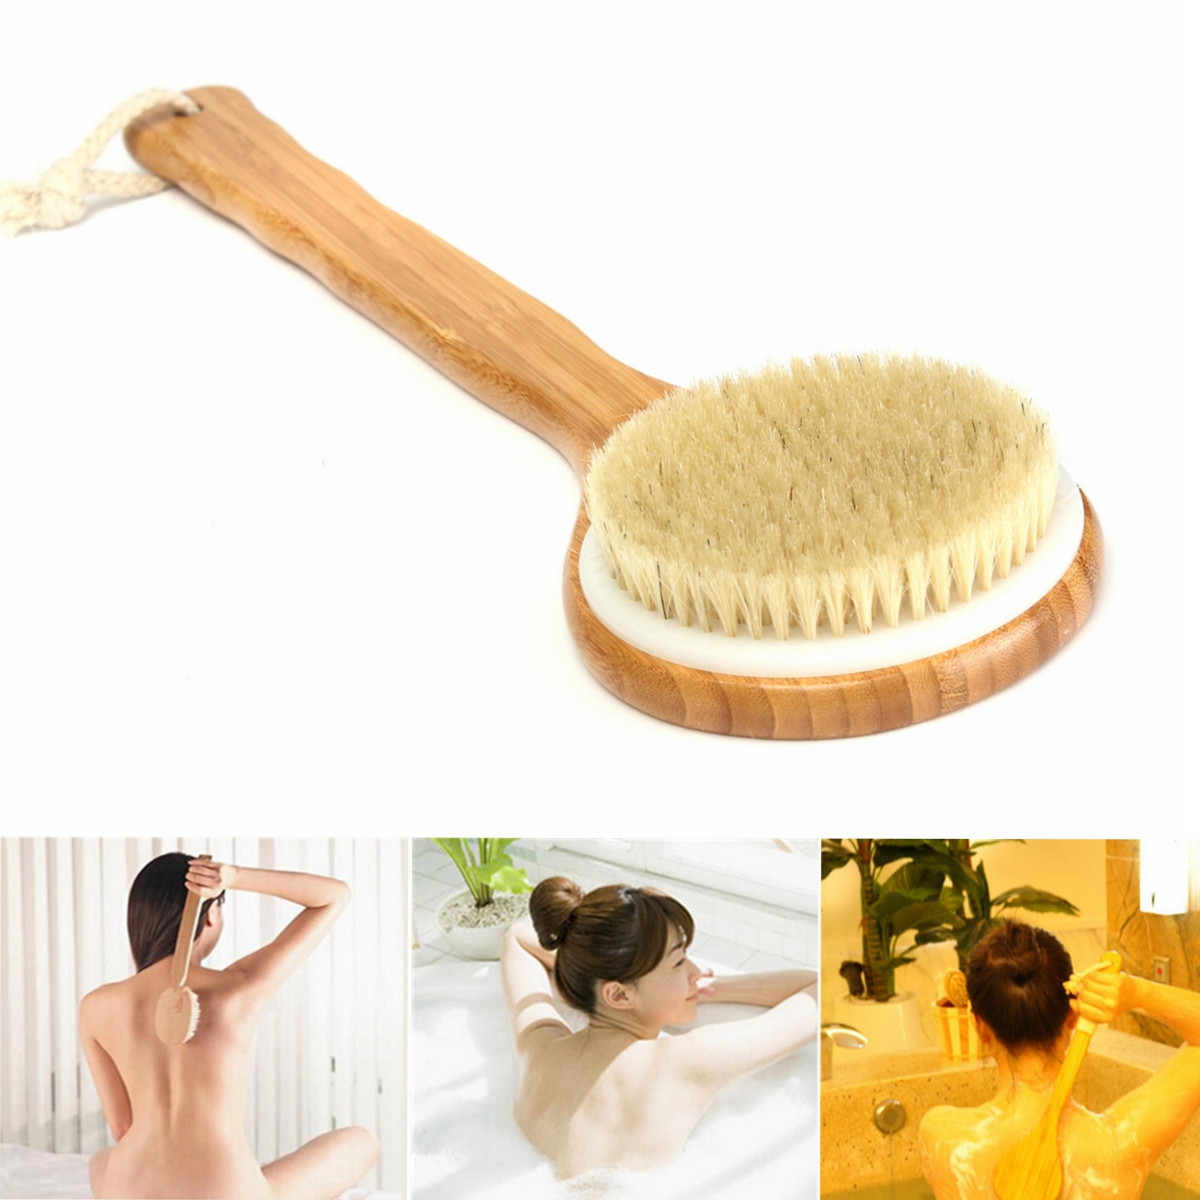 Bristle Long Handle Wooden Bath Shower Body Brush Spa Scrubber Soap Cleaner Exfoliating Bath Tools SKU267765